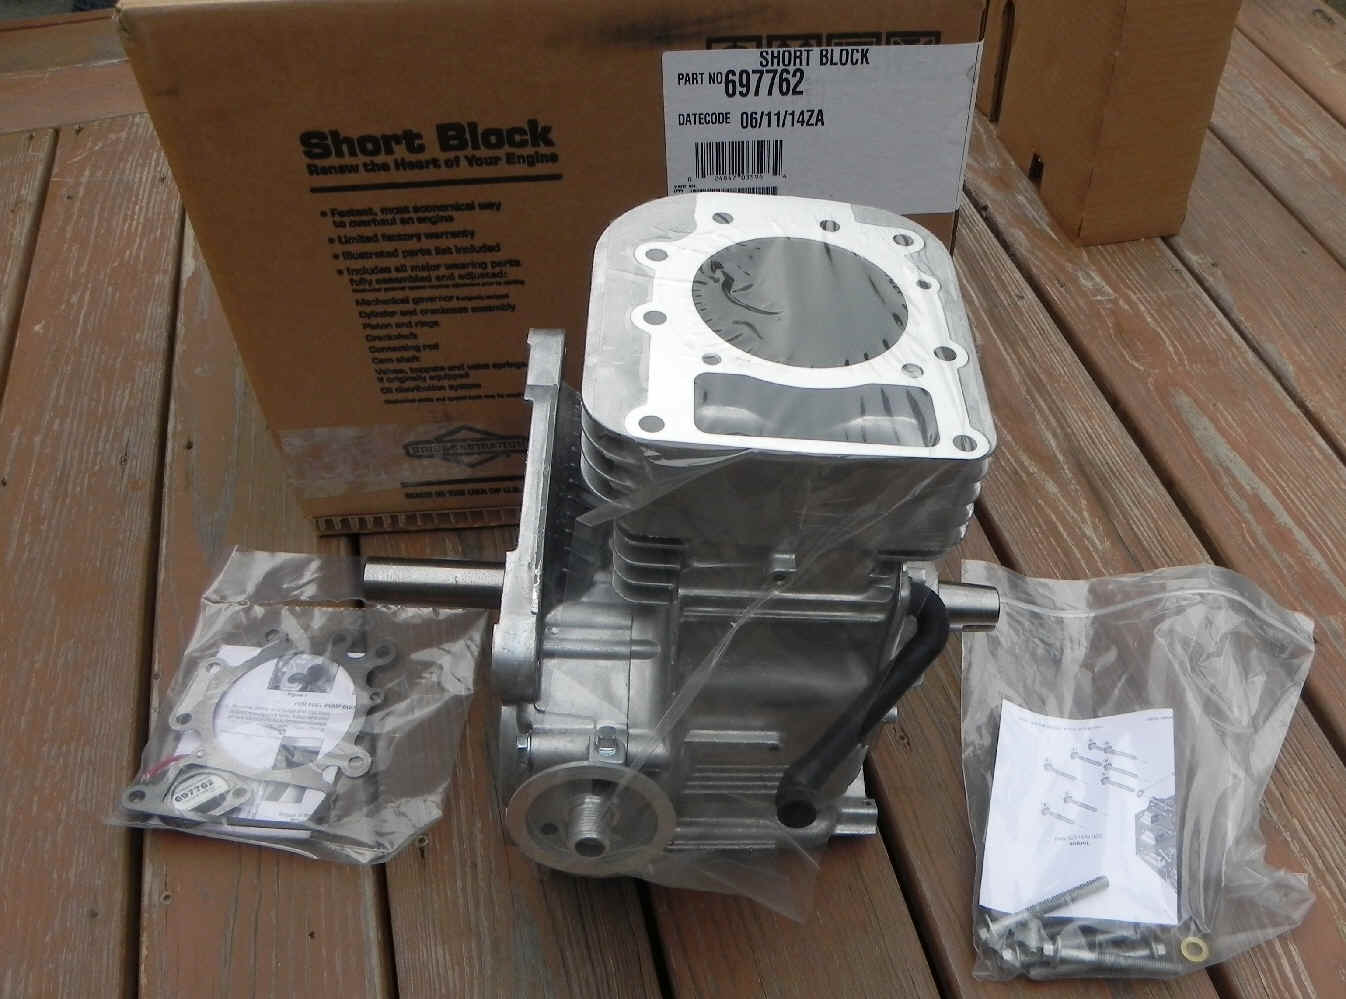 Briggs Stratton Vertical Shaft Small Engine Short Blocks And 92900 Series Parts List Diagram Block Part No 592060